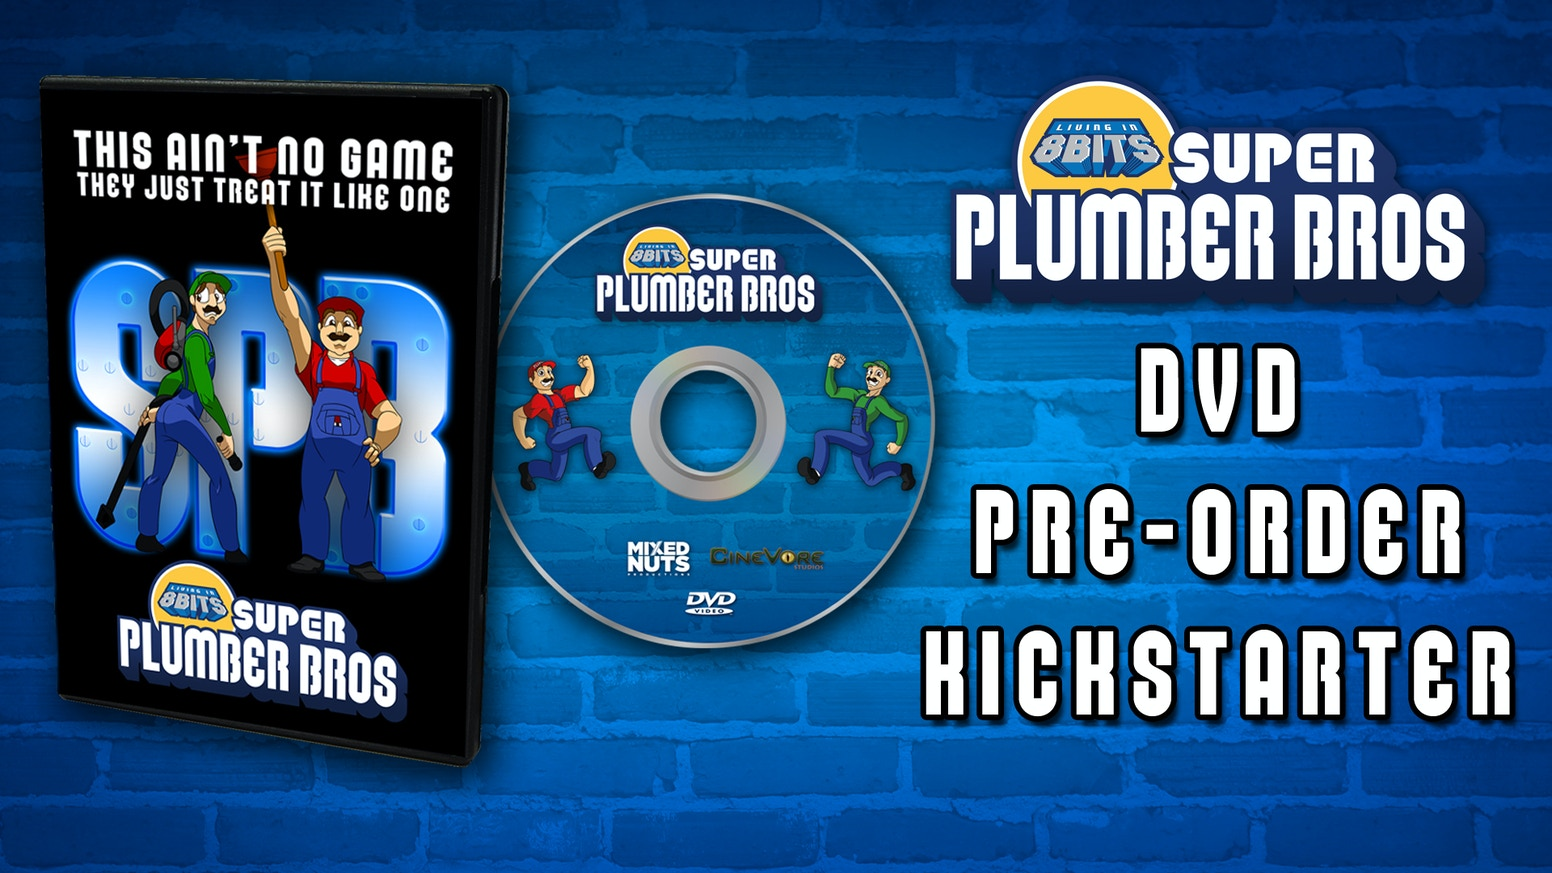 Living in 8 Bits: Super Plumber Bros is a sketch comedy web series based on the lovable world of retro video games. Pre-order the DVD!